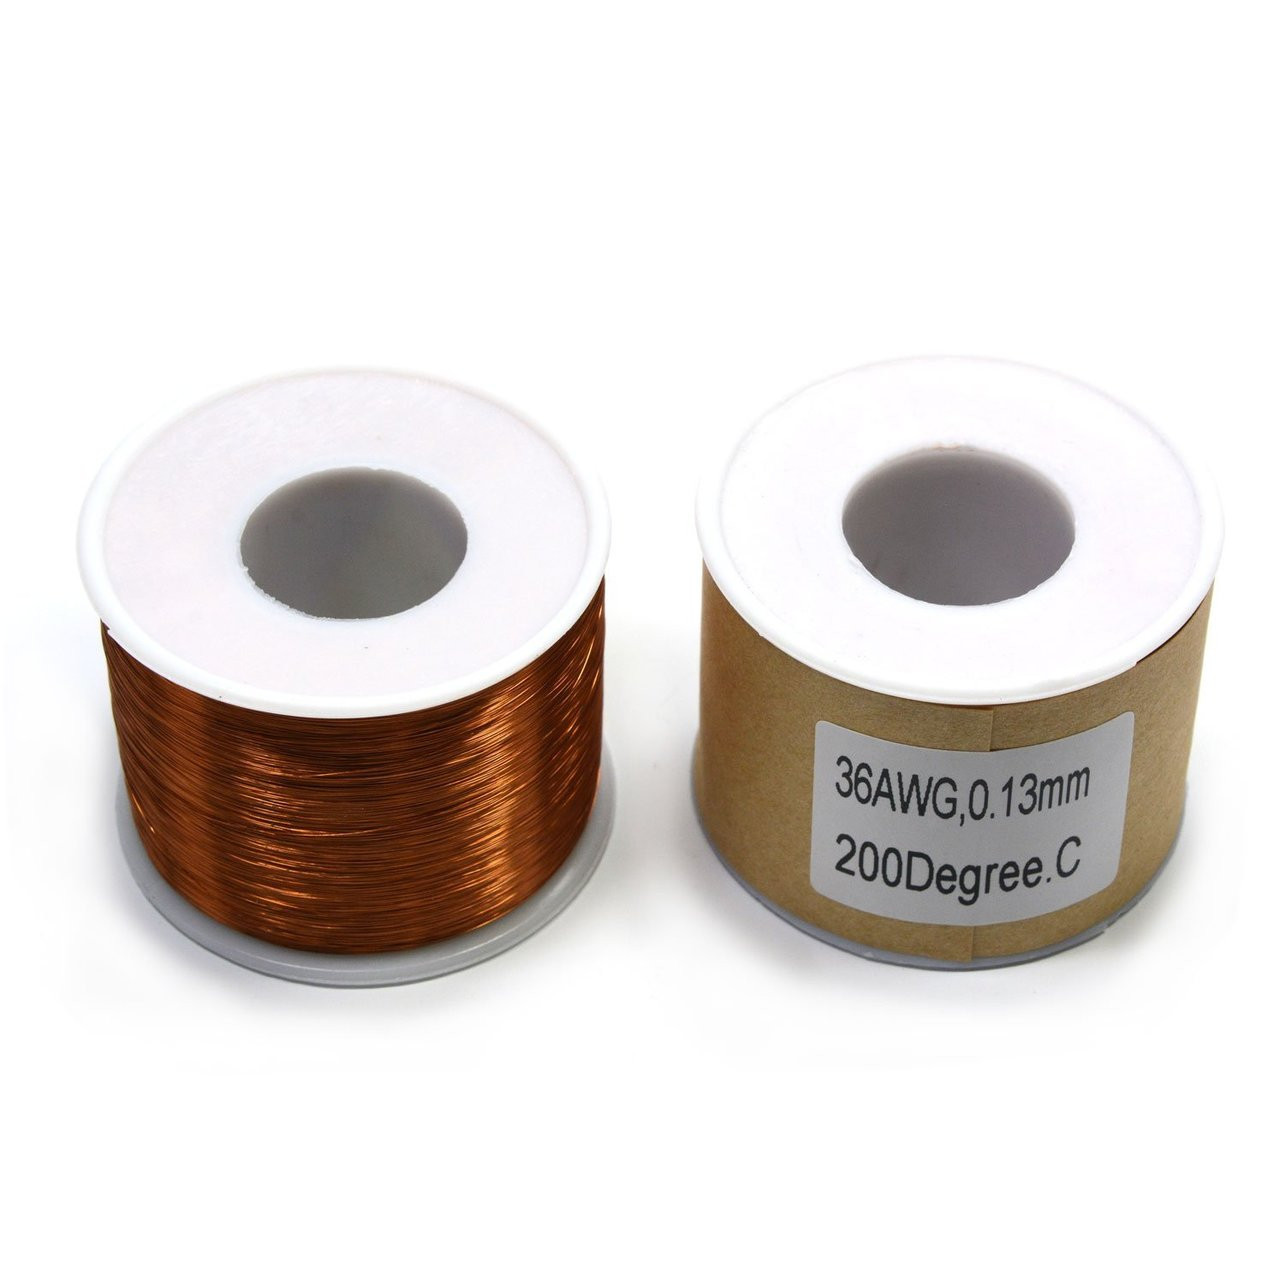 Magnet wire 1Lb Spool of 36 AWG Magnet Wire 36AWG-1